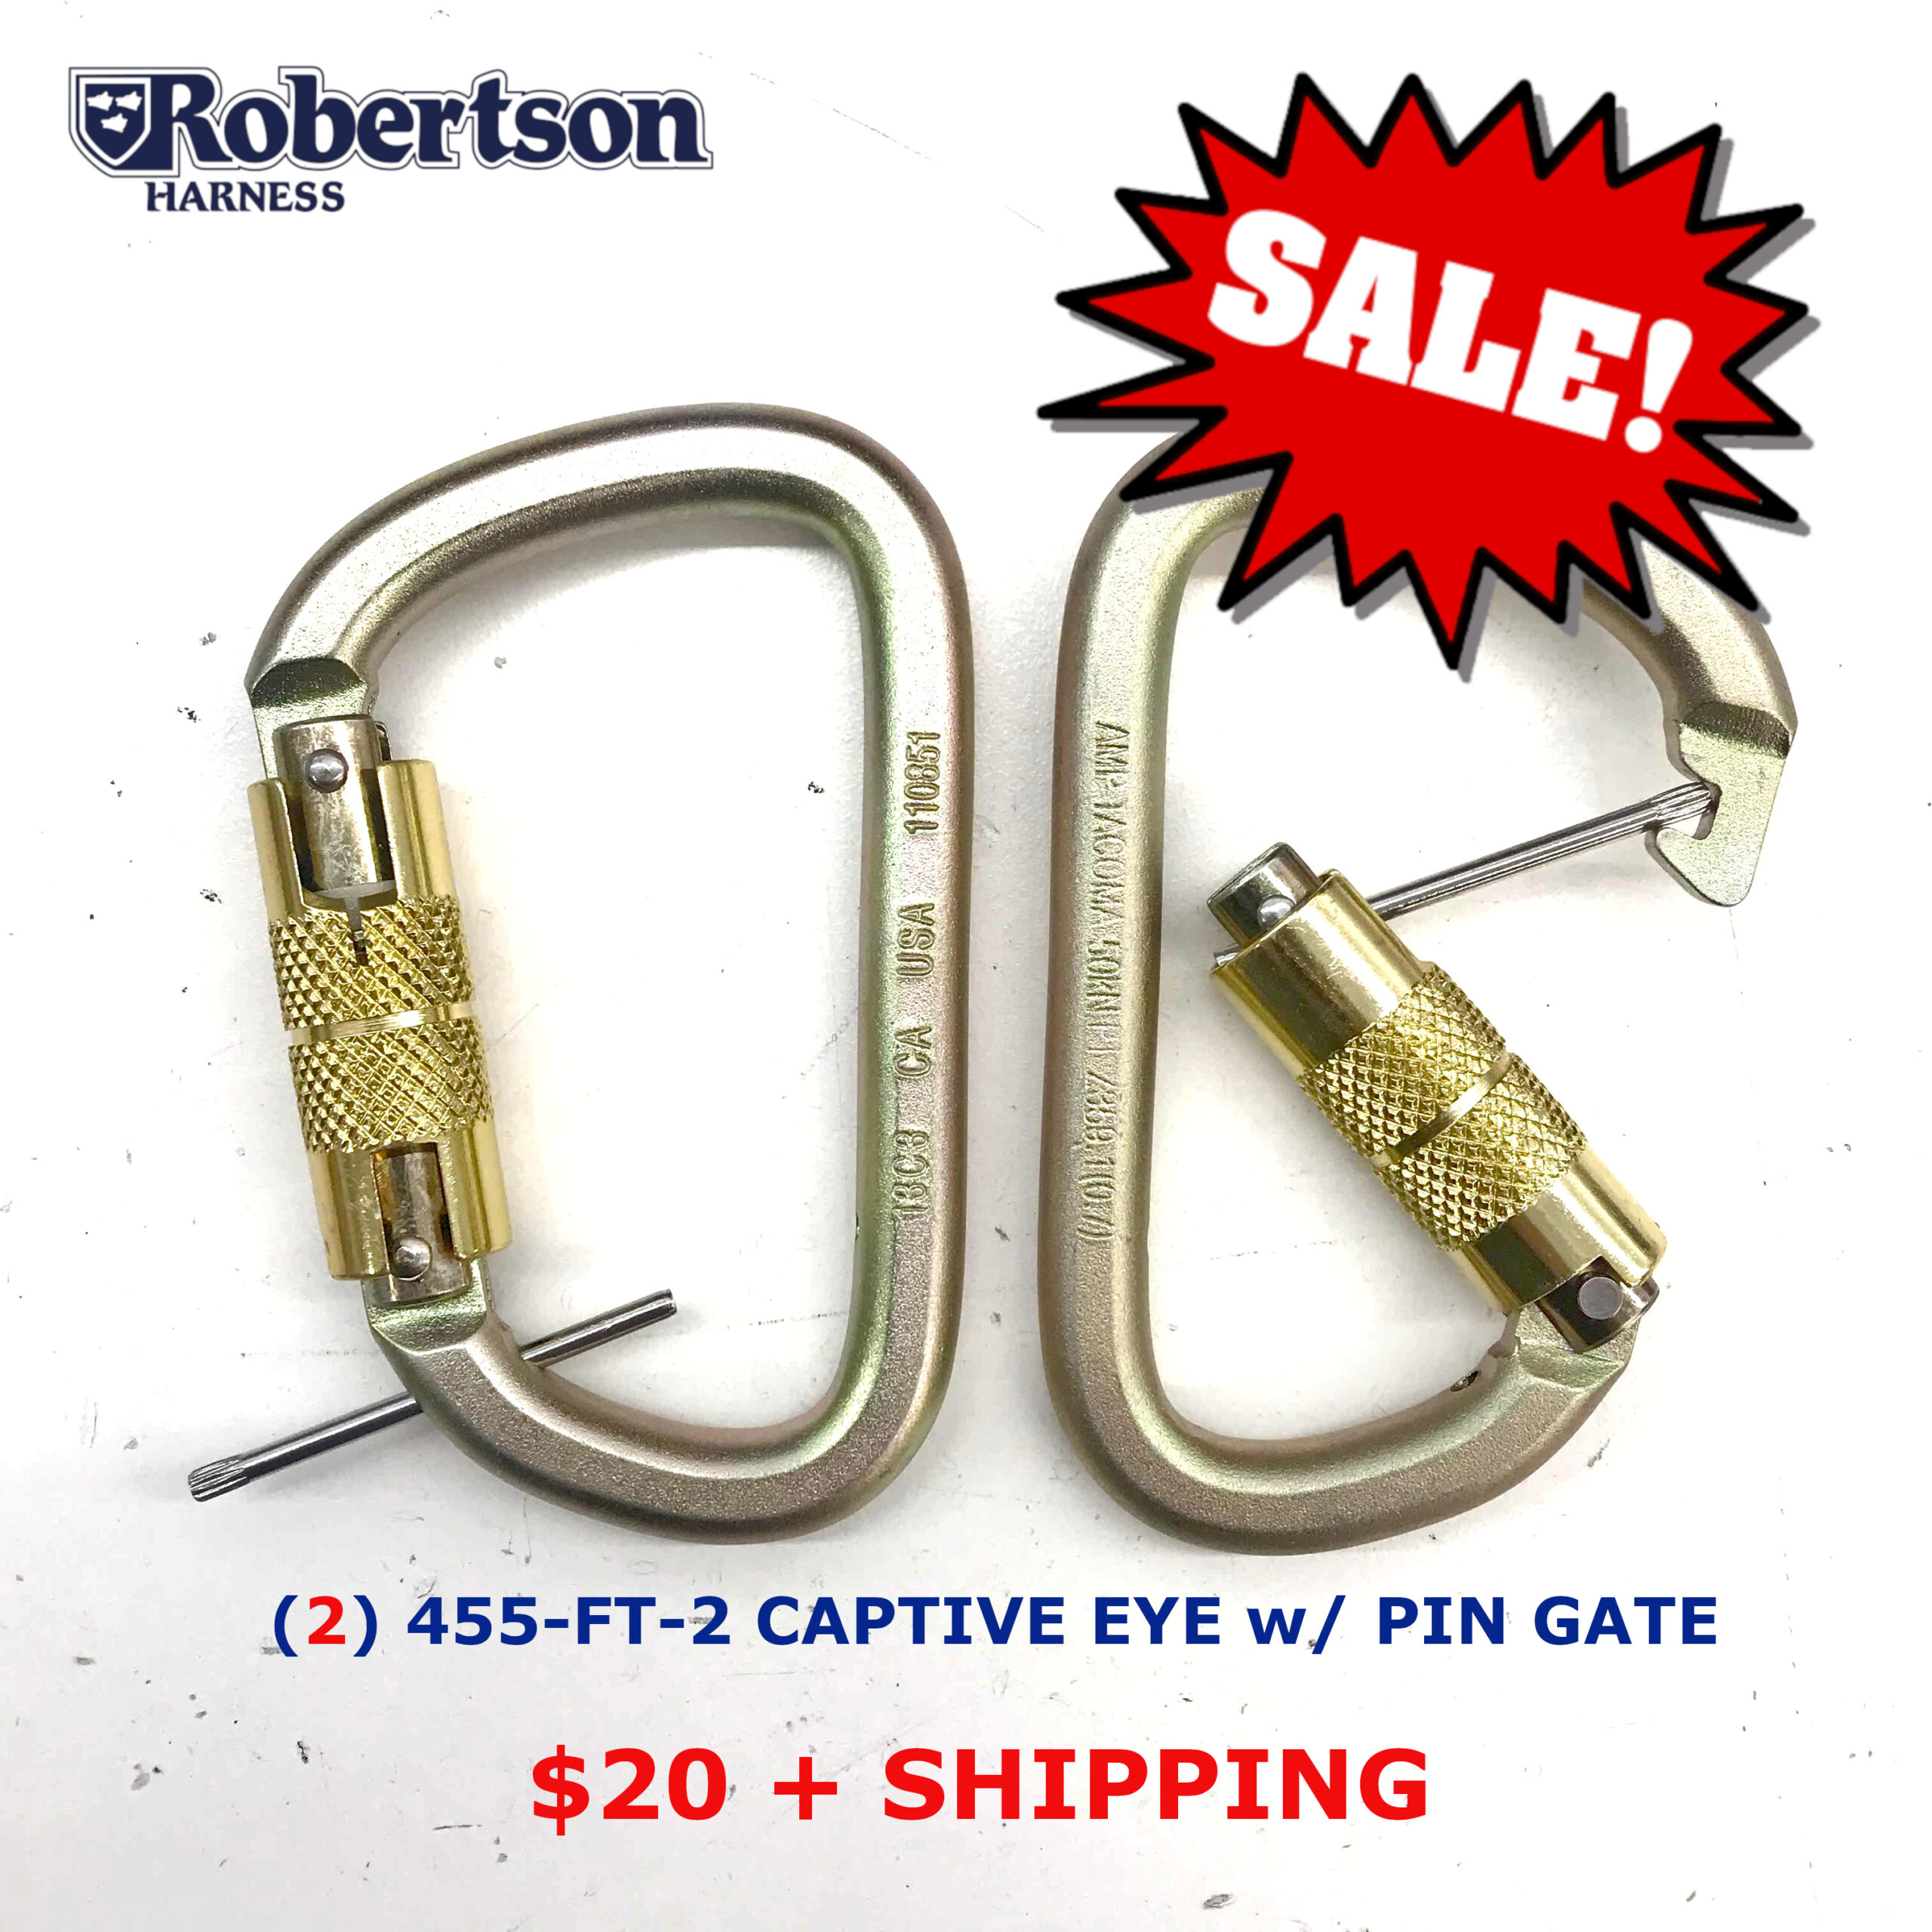 SALE! (2) 455-FT-2C Pin Gate w/ Captive Eye (2 Stage / Pin Gate / Captive Eye)